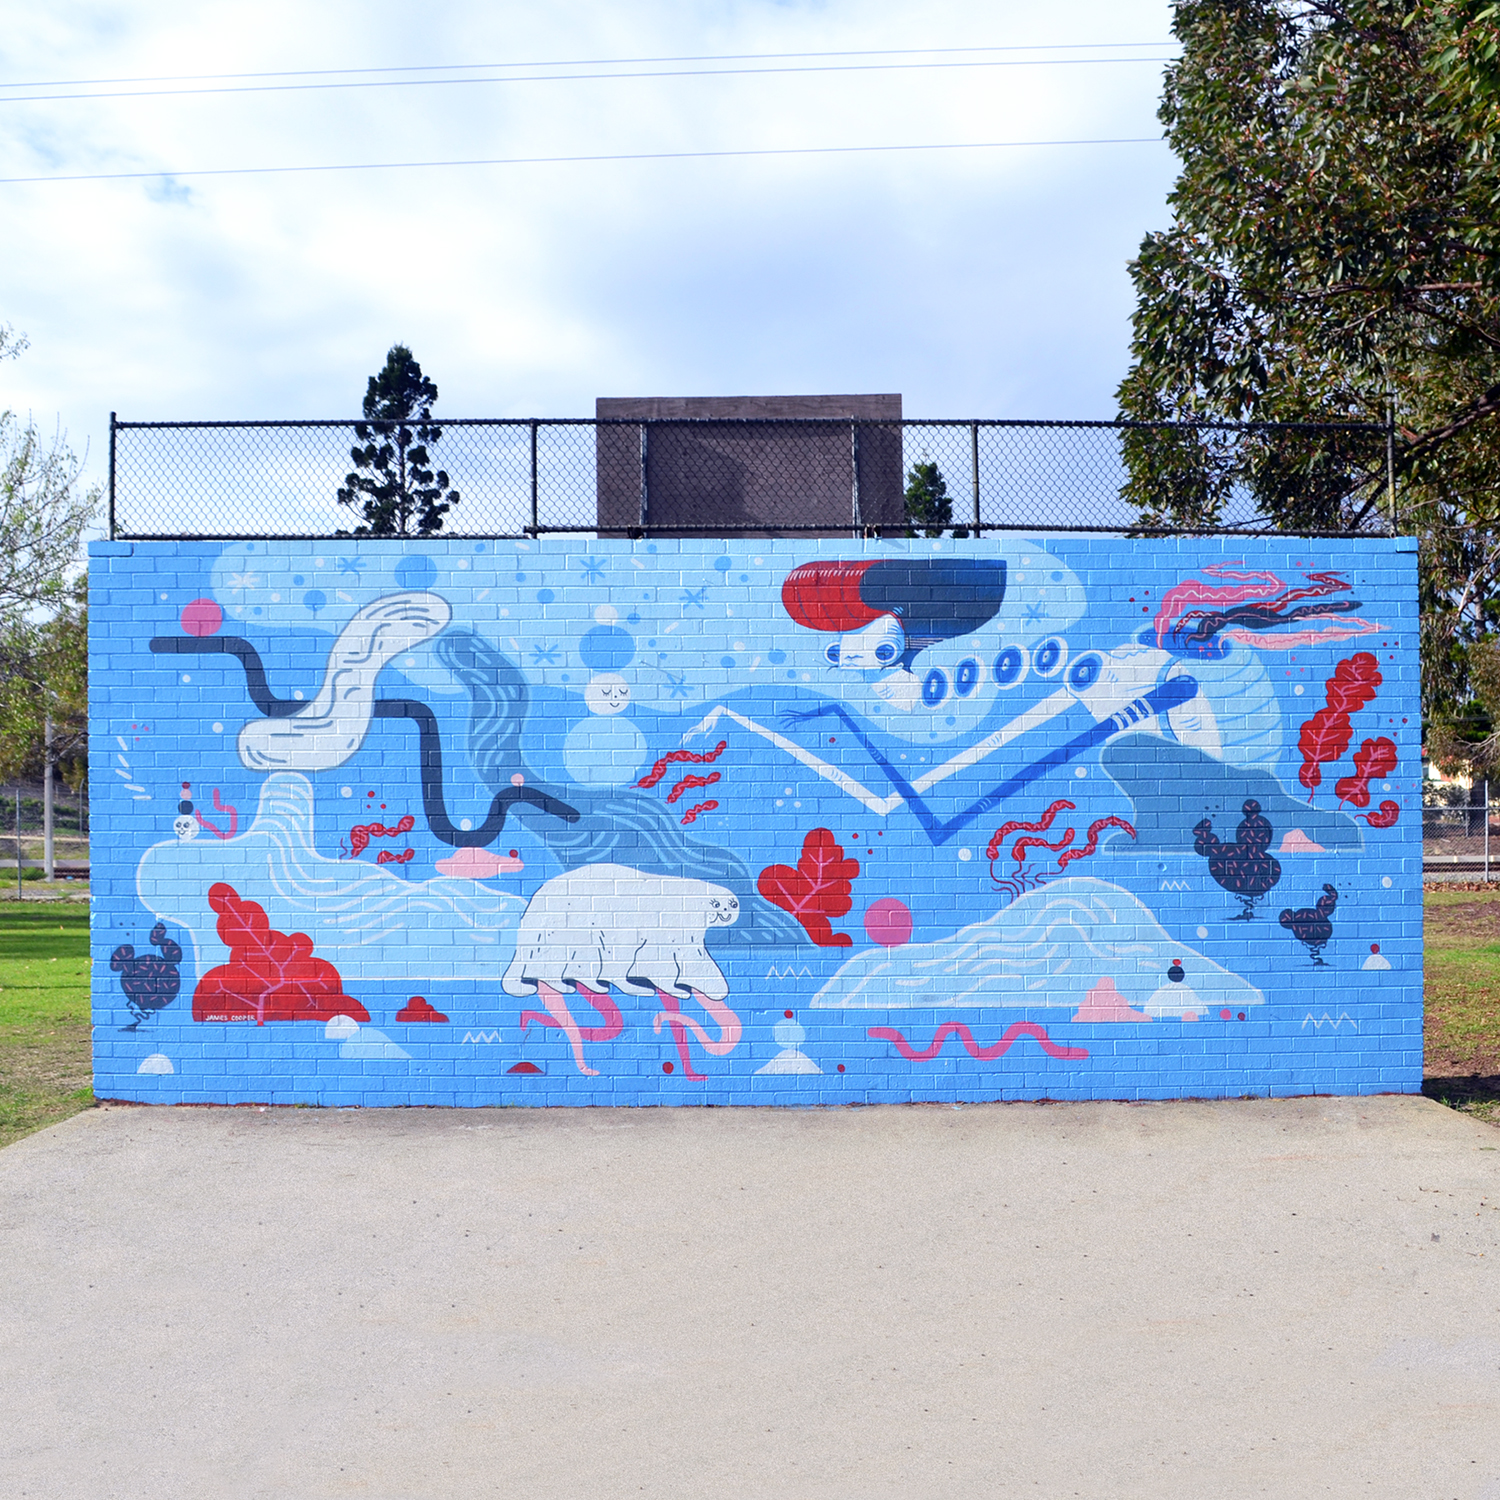 Collaboration with James Cooper. John Bissett Reserve, Victoria Park. Commissioned by Town of Victoria Park.